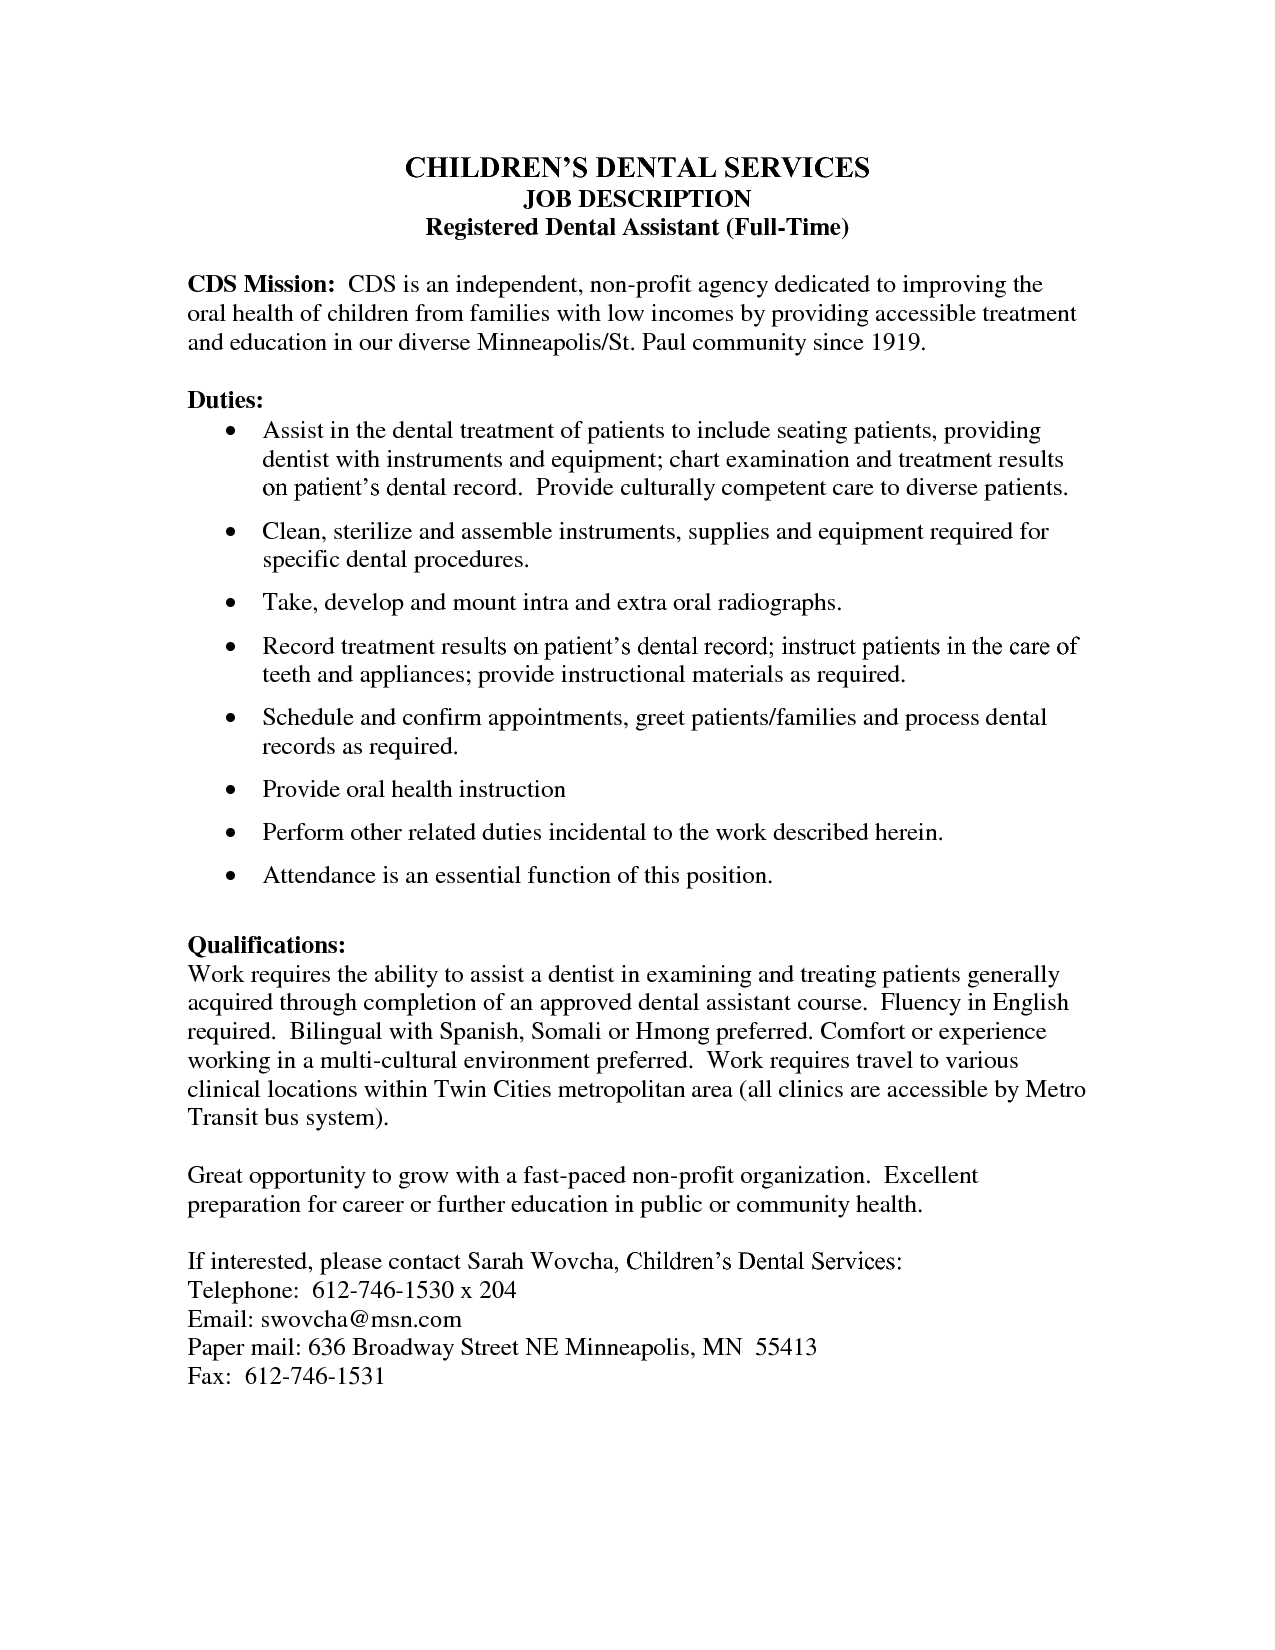 dental assistant skills for resumes